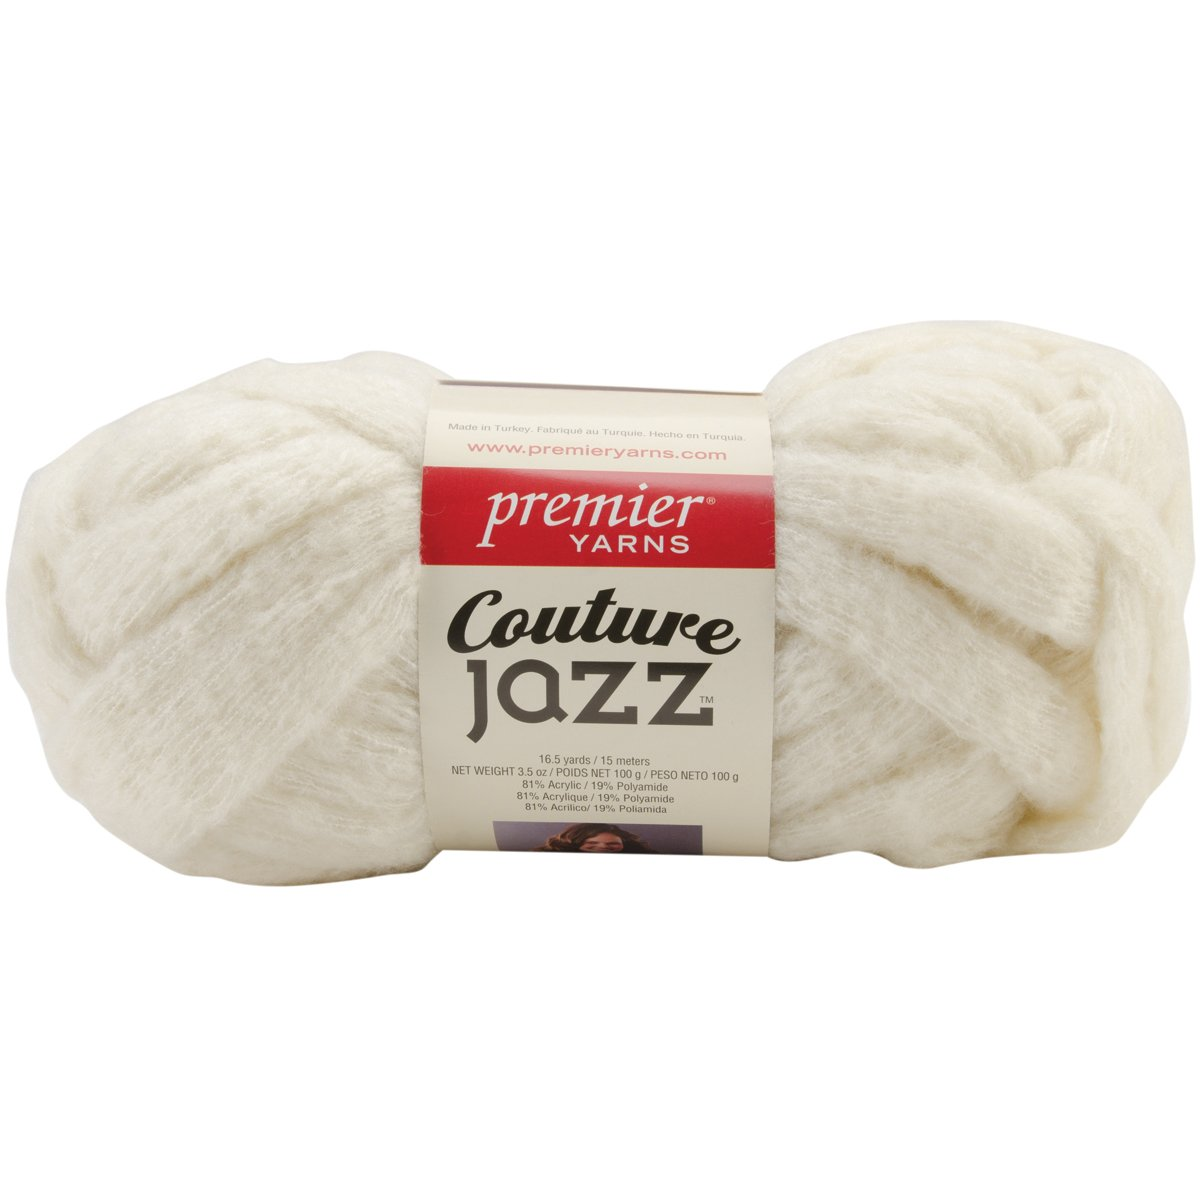 Premier Yarn Couture Jazz Yarn, Milk, 3 Pack Notions - In Network 60860